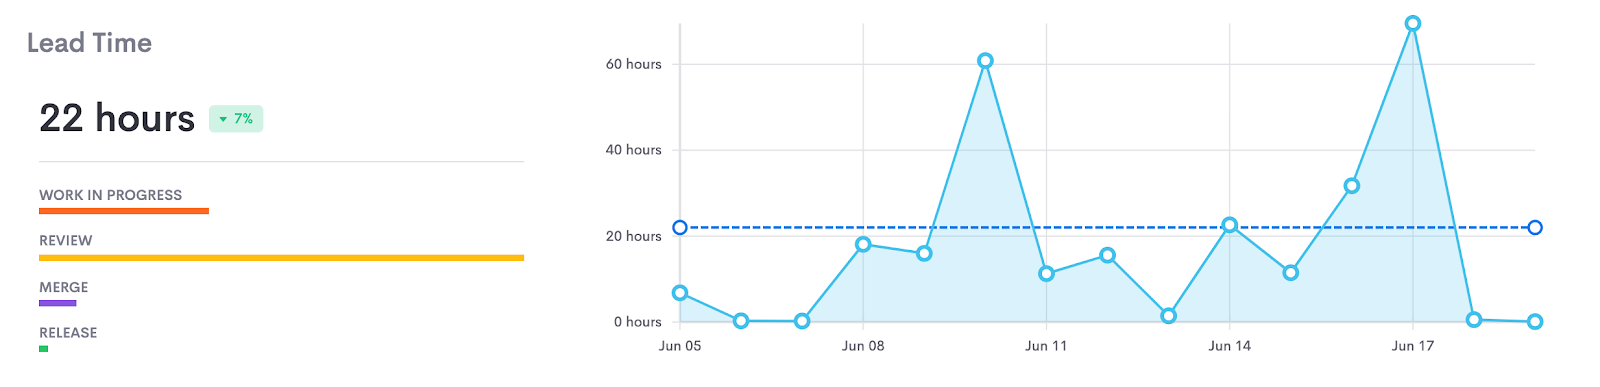 An image about Lead Time on Athenian's Engineering Metrics & Insights Dashboard.